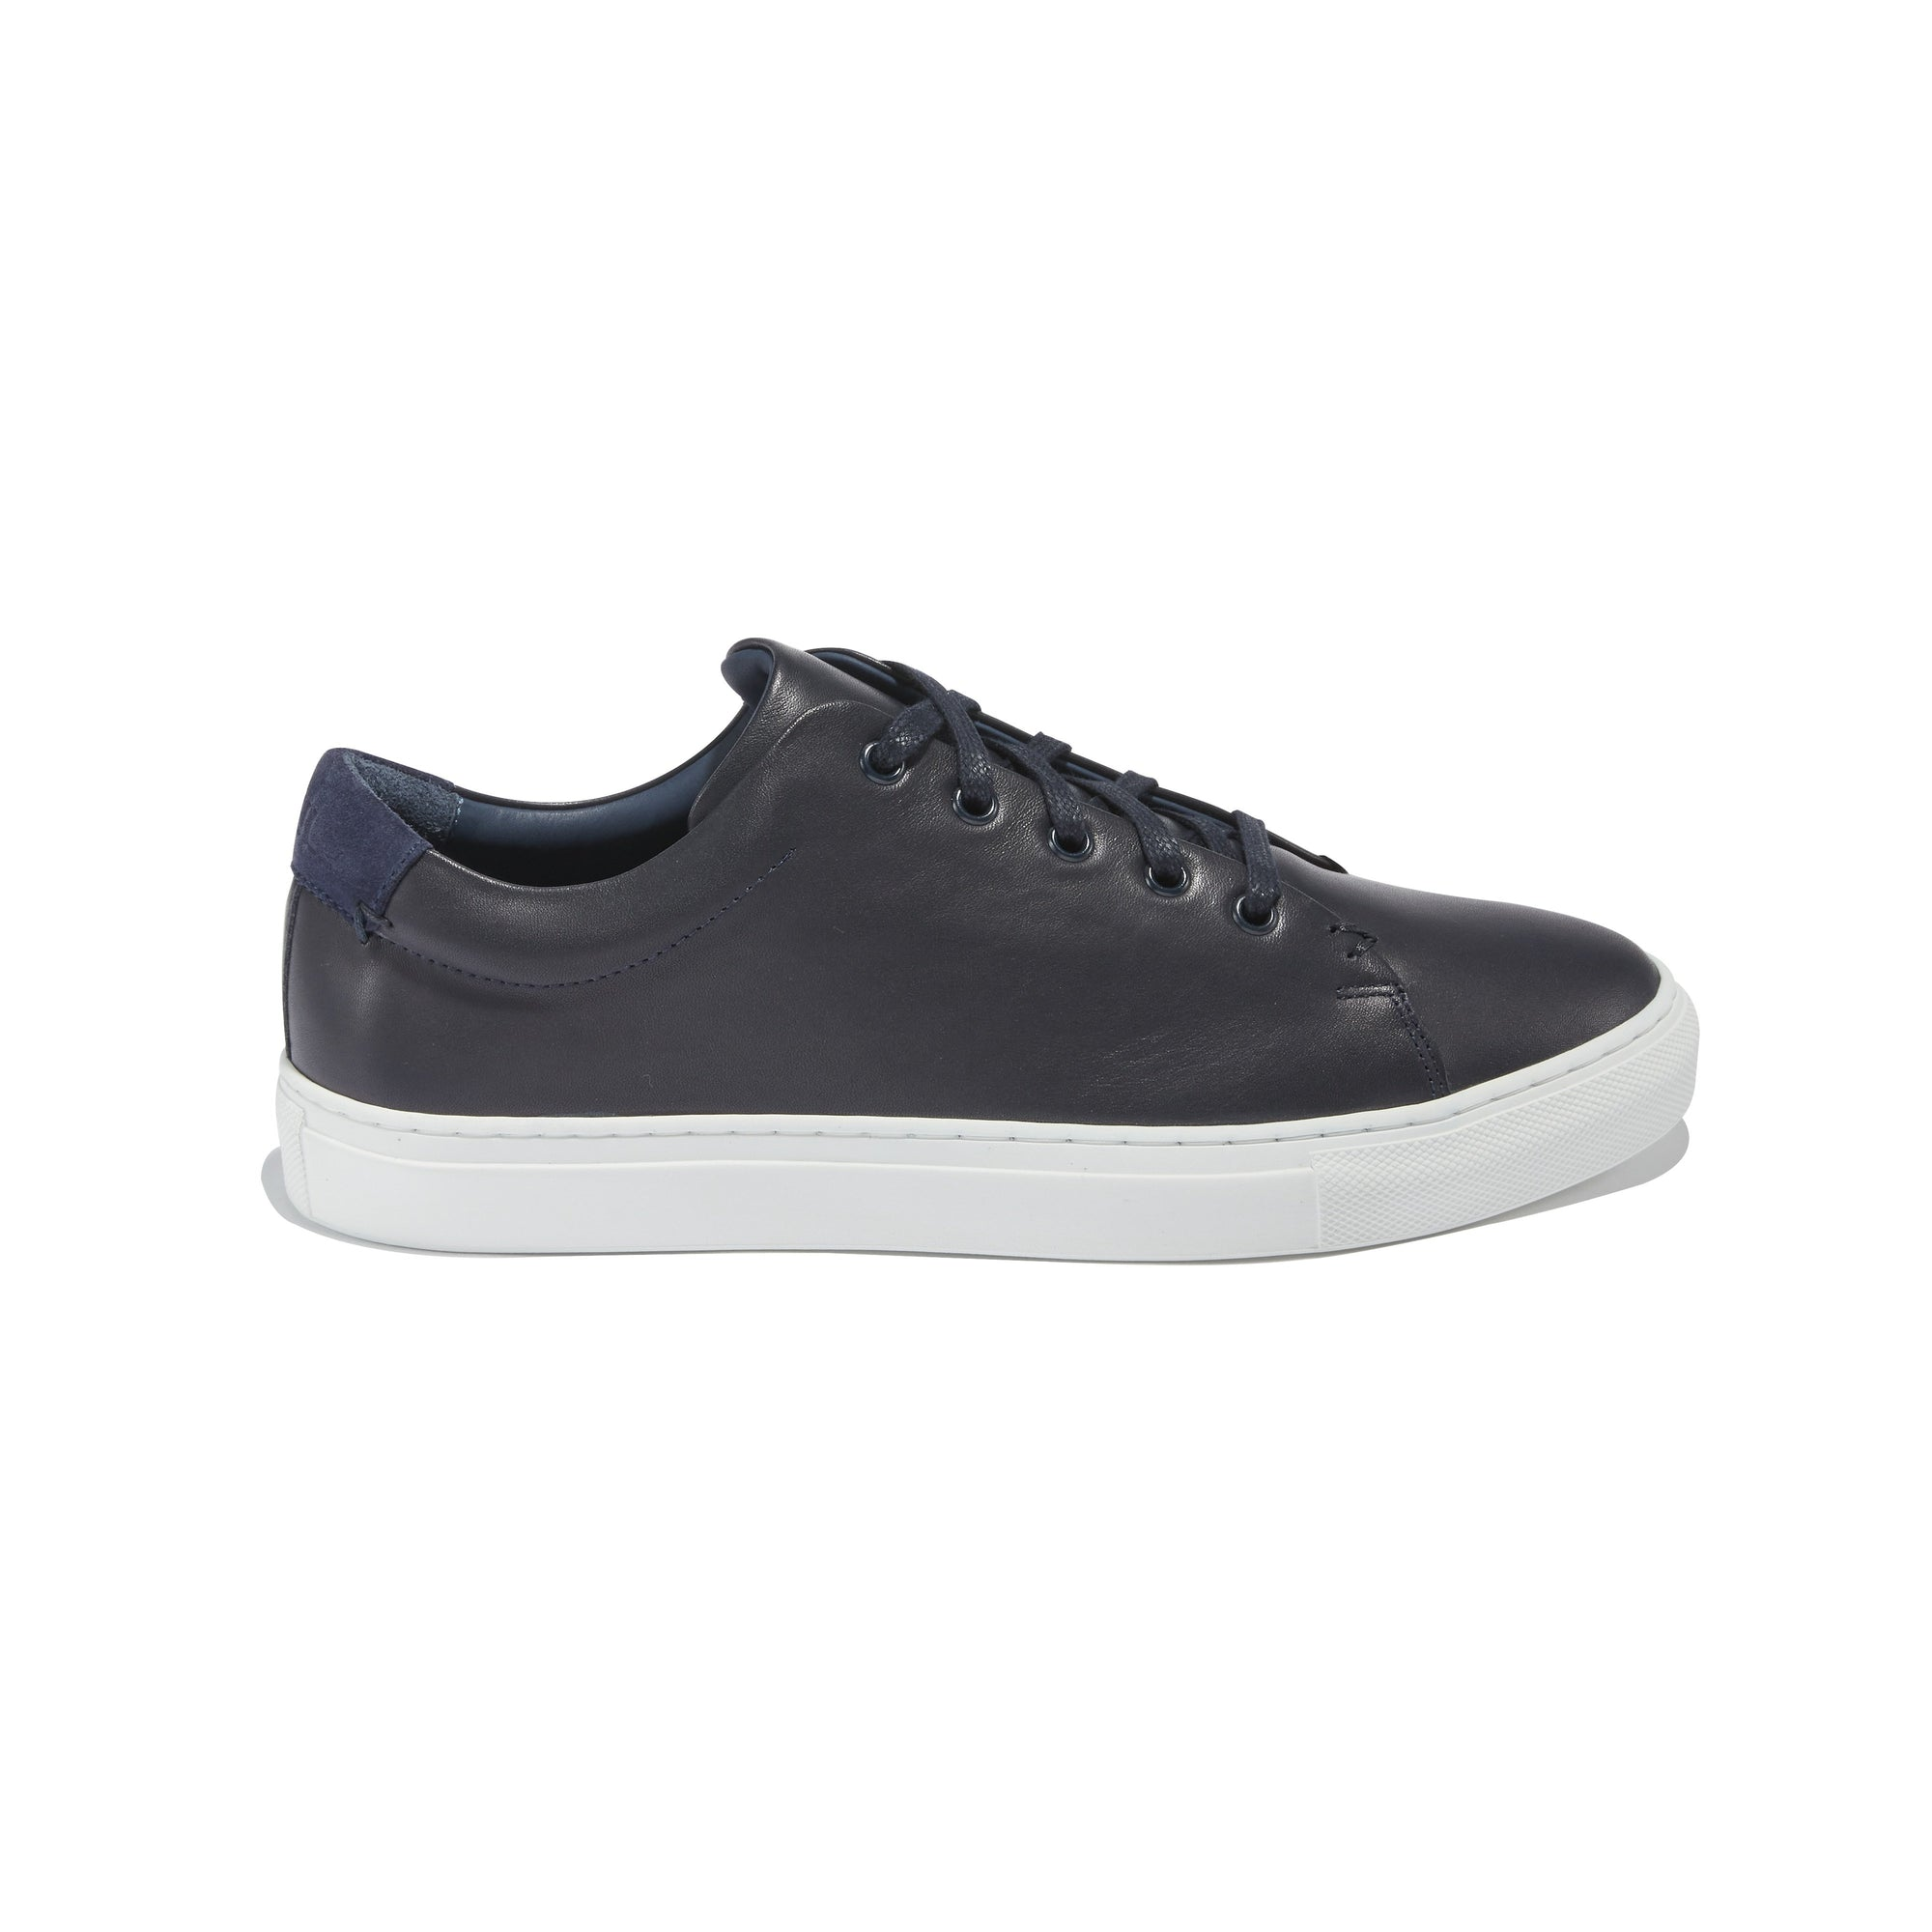 Men's Braga Sneaker in Navy Leather - The HiO Life